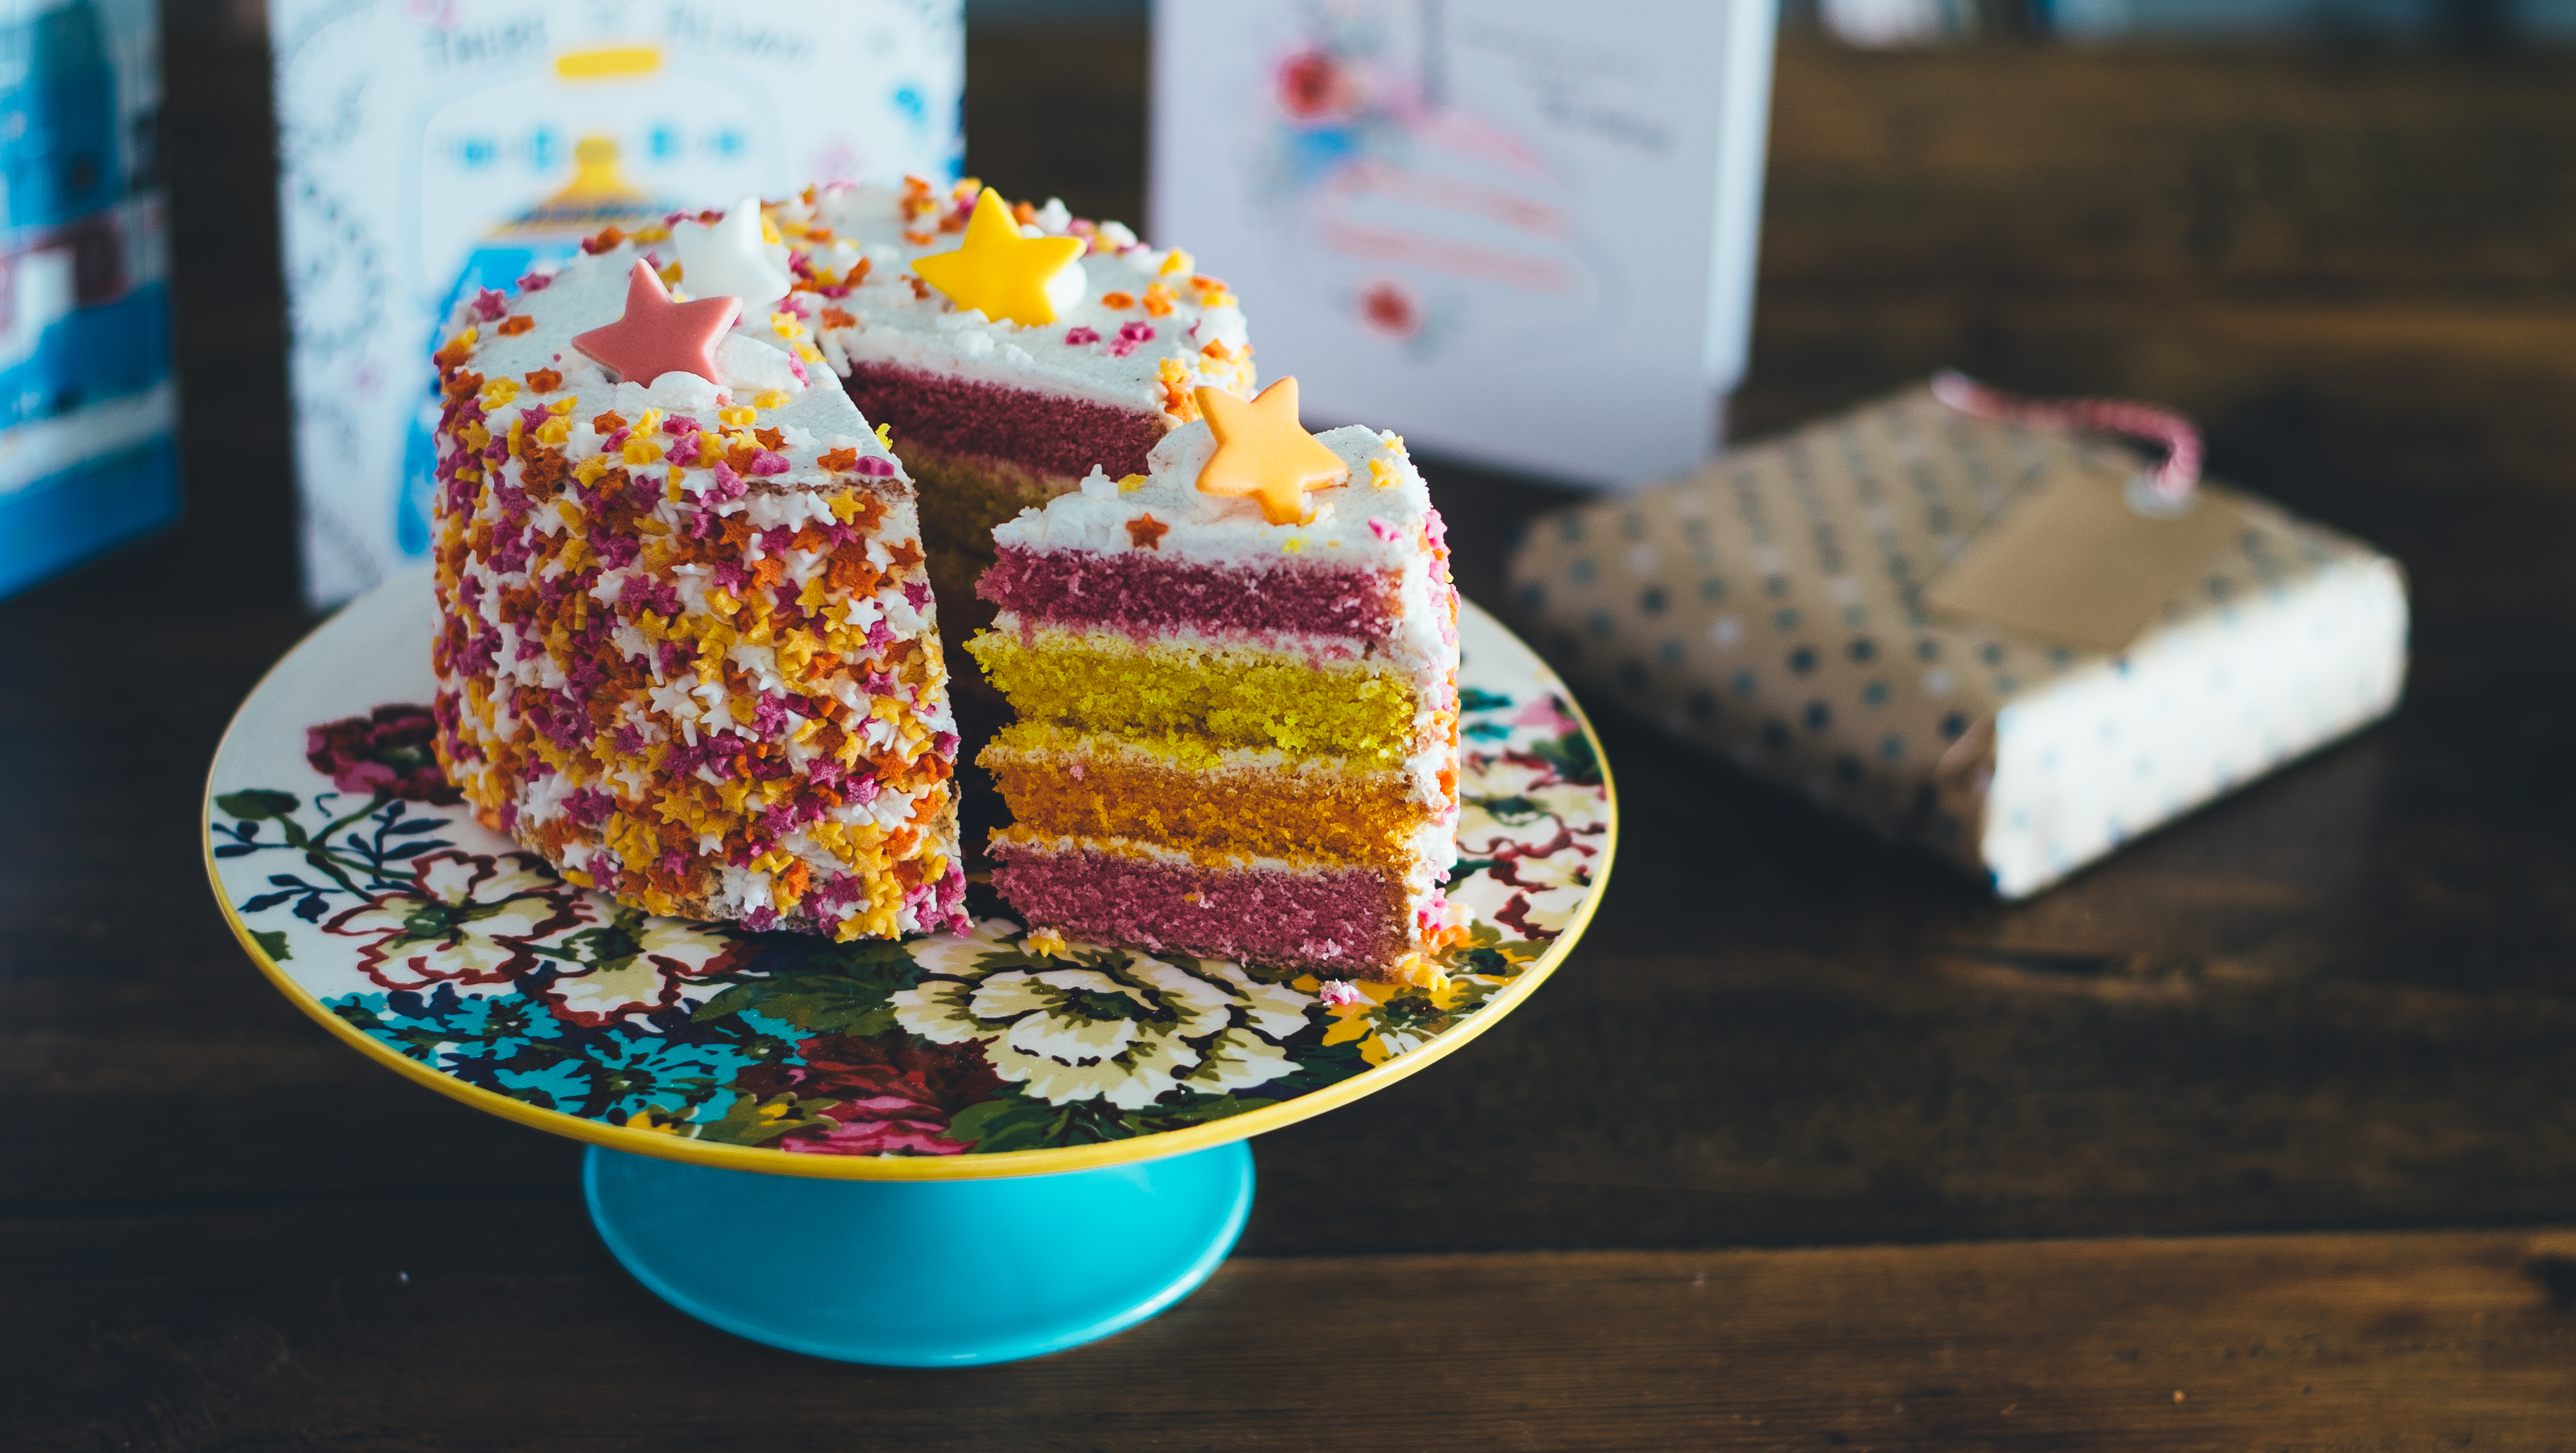 Happy Birthday Cake Immagini ~ Cake pictures download free images on unsplash